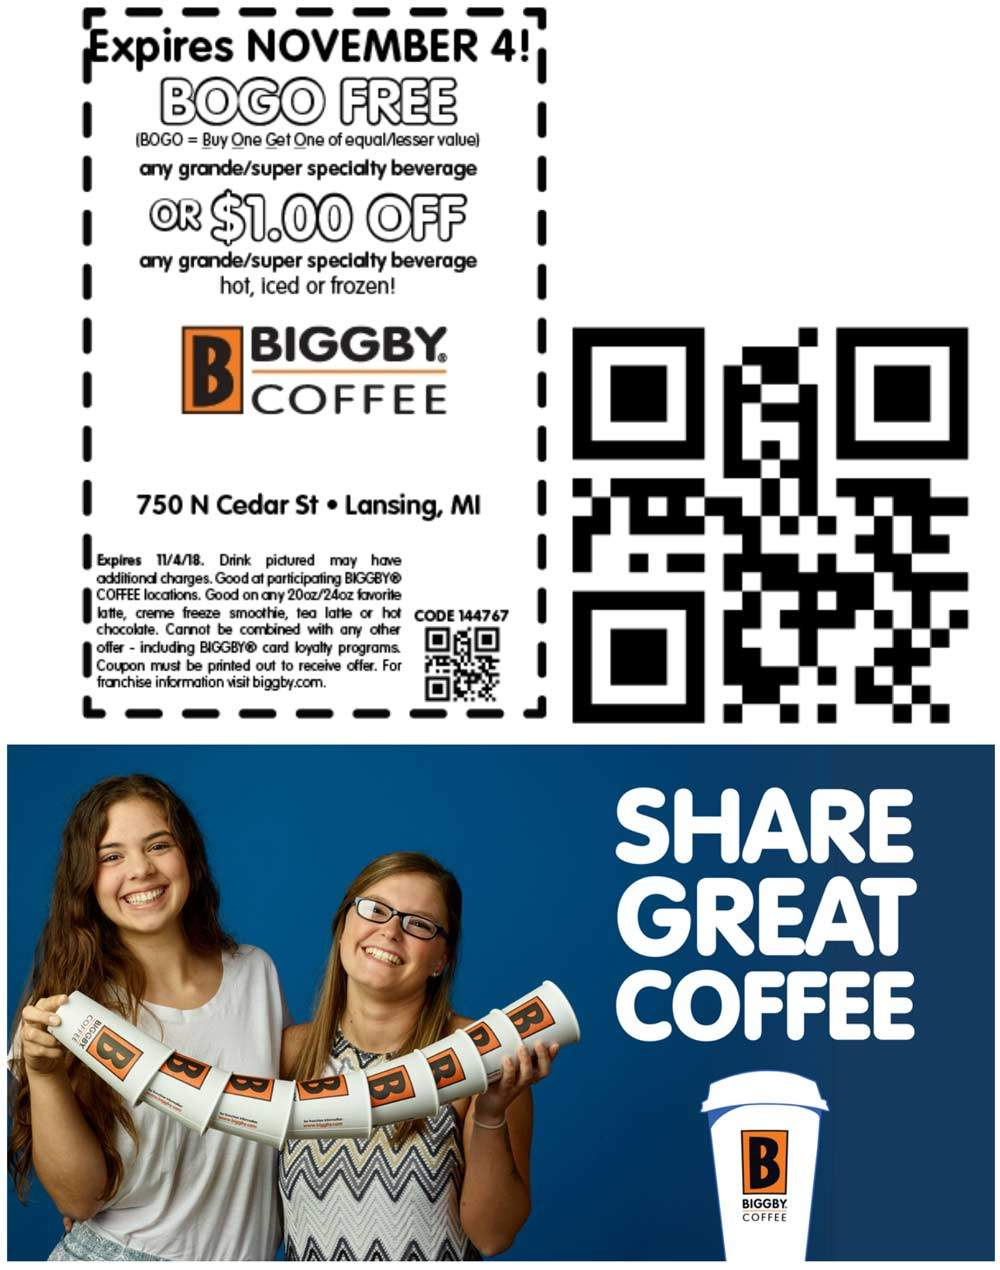 Biggby Coffee Coupon November 2019 Second beverage free today at Biggby Coffee